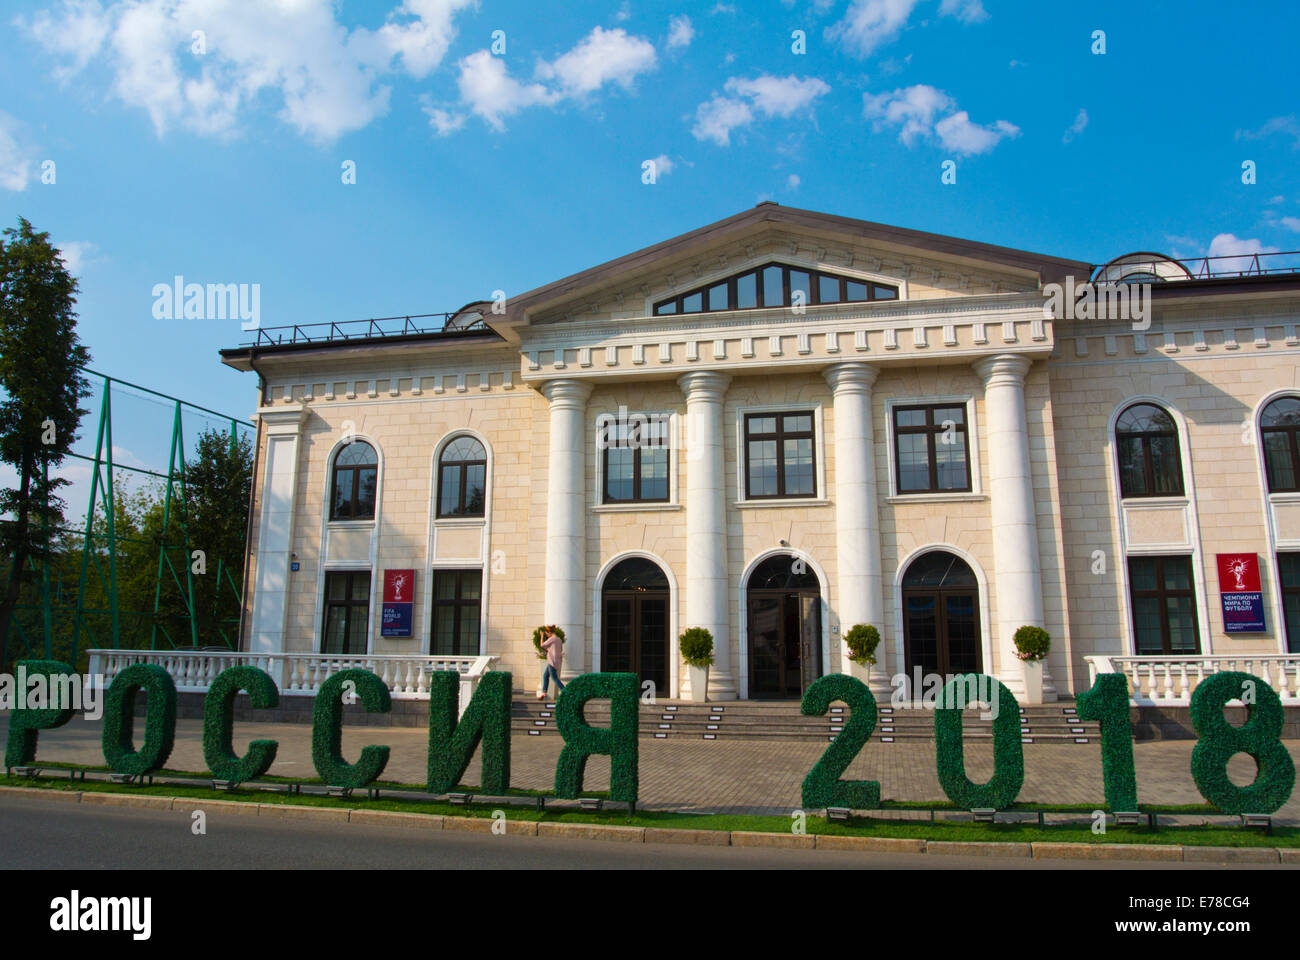 Russia 2018 World Football Cup local organising committee building, next to Luzhniki Stadium, Moscow, Russia, Europe - Stock Image